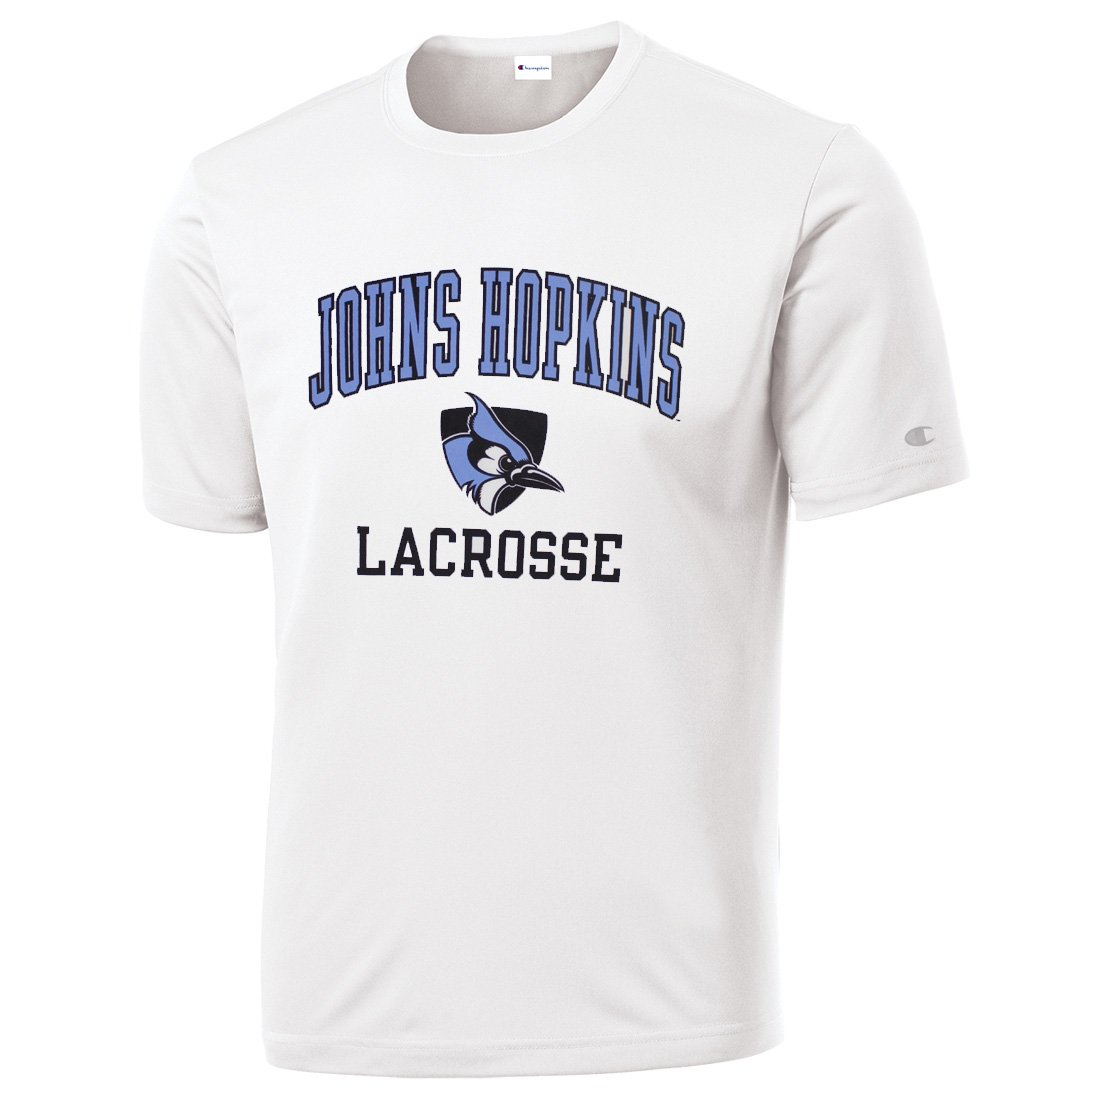 Johns Hopkins Blue Jays Lacrosse Tee - Youth-Medium